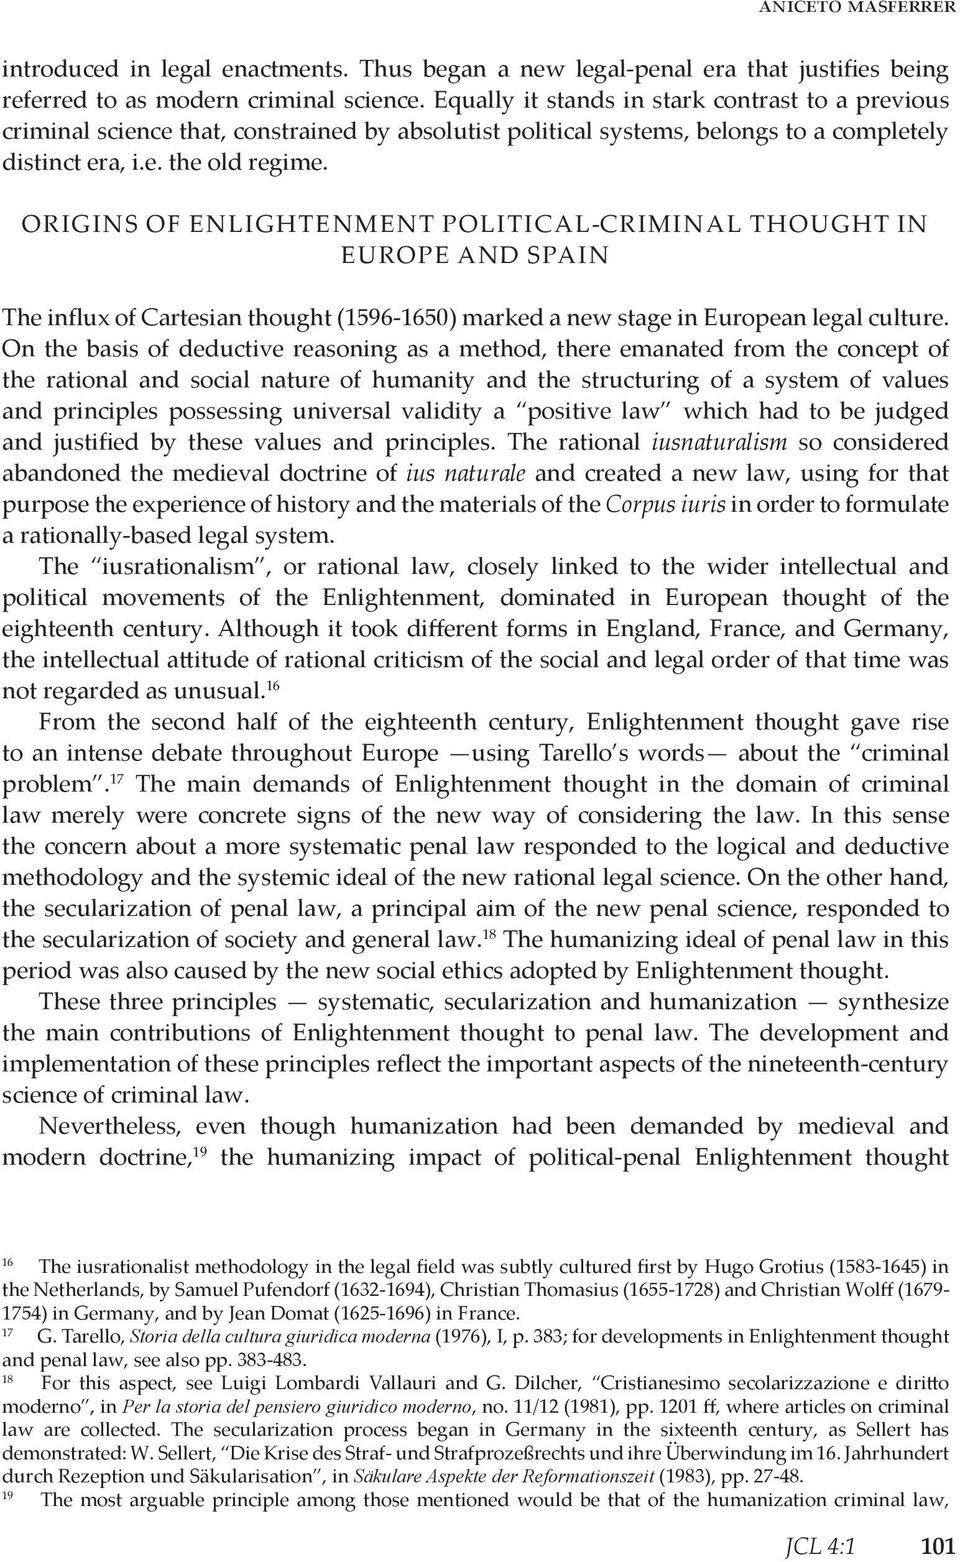 Origins of Enlightenment political-criminal thought in Europe and Spain The influx of Cartesian thought (1596-1650) marked a new stage in European legal culture.